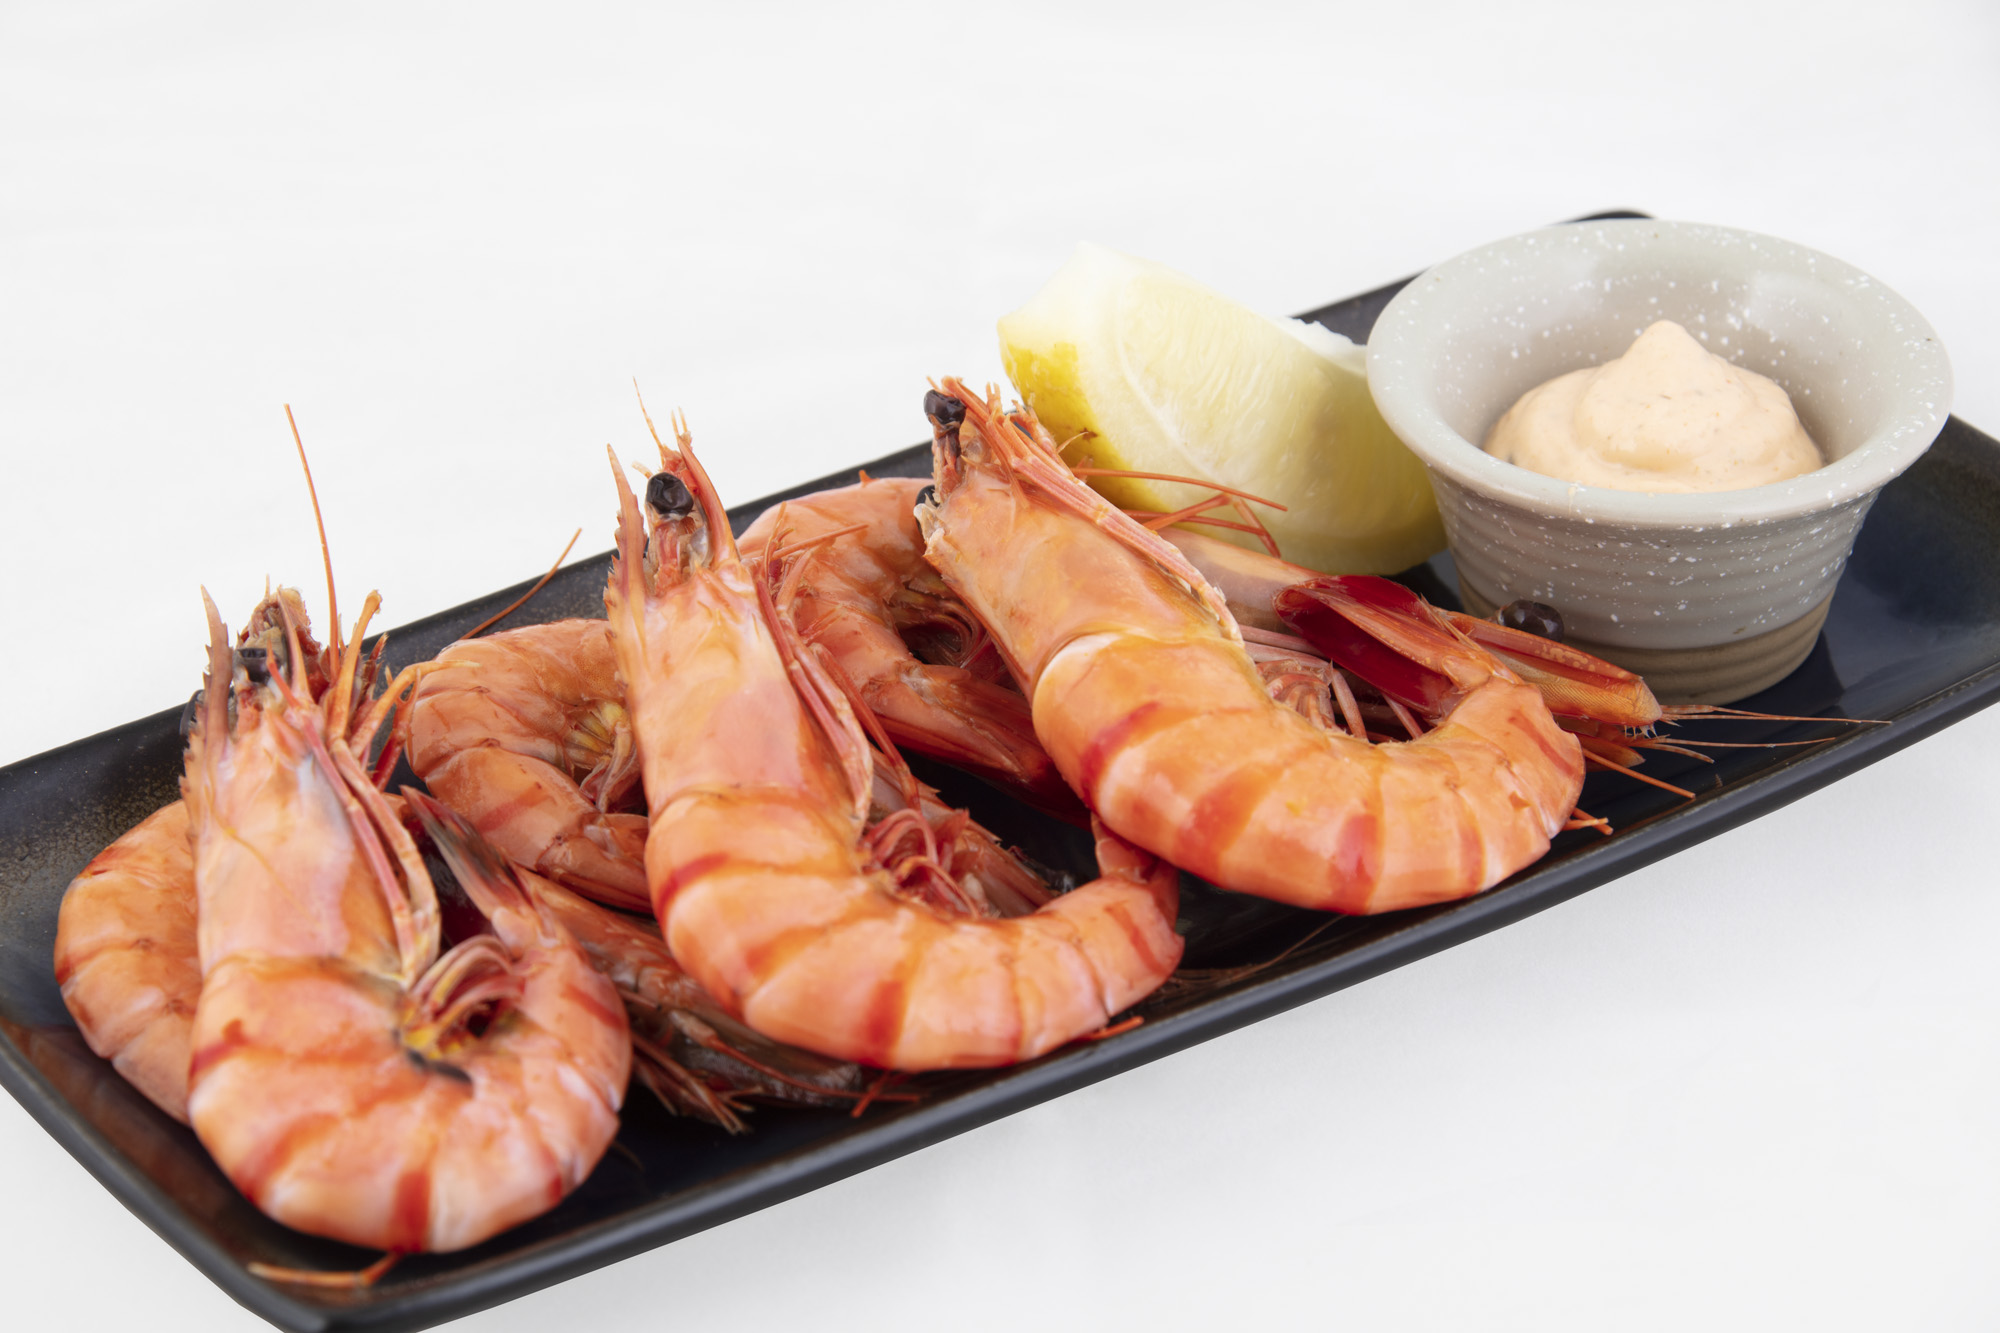 Prawns with cocktail sauce